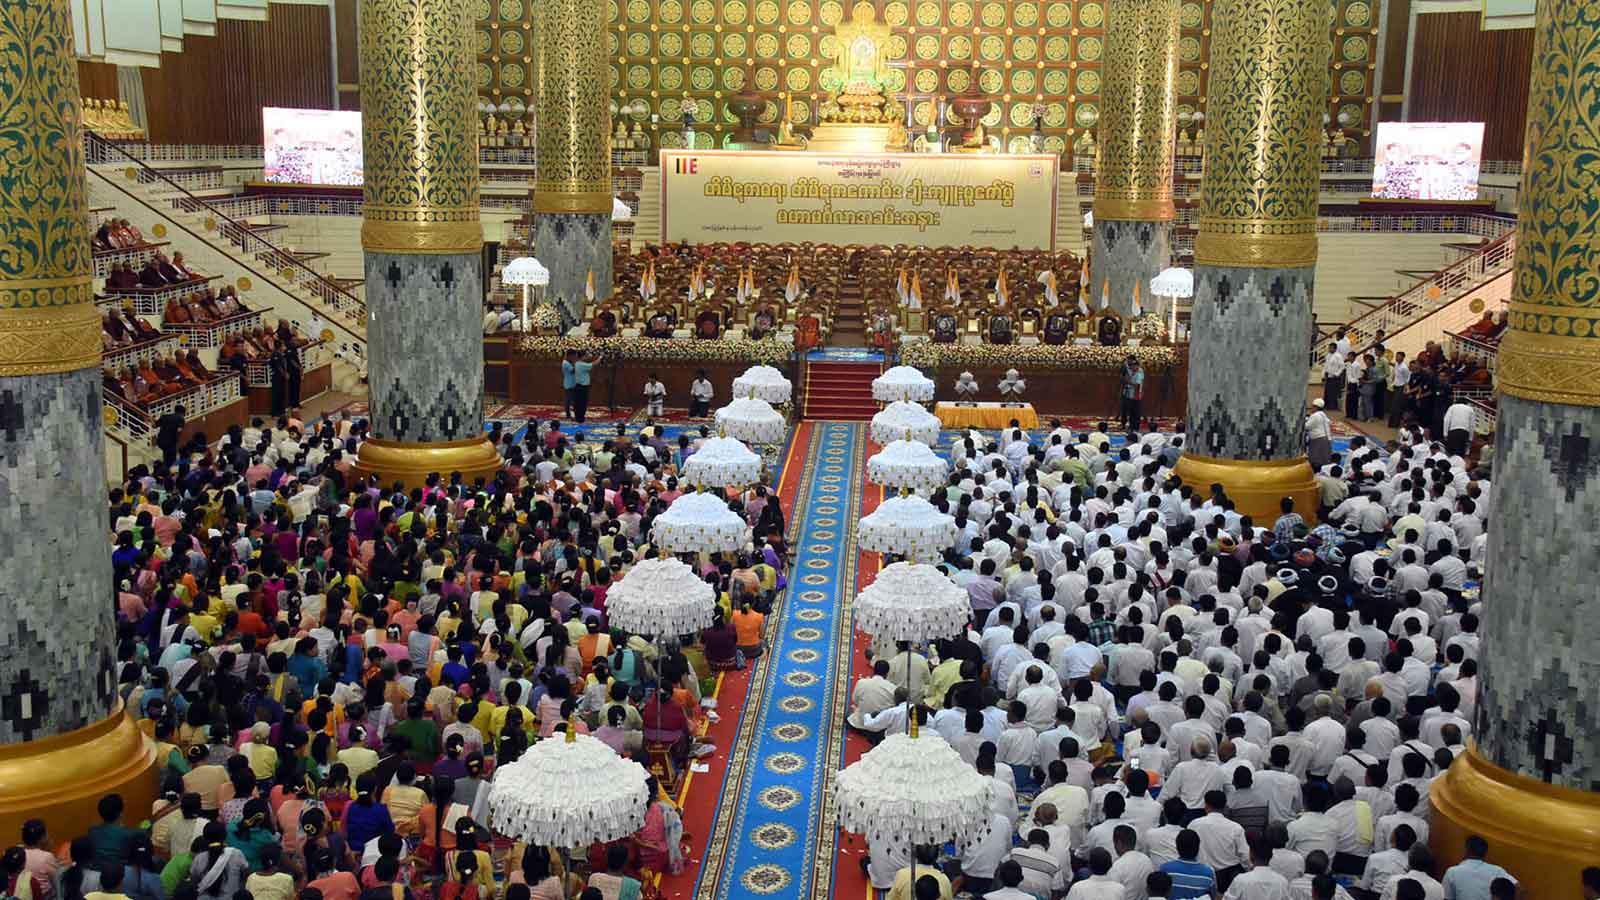 A ceremony to confer religious titles to winners of the Tipitakadhara Examination is held in Yangon on 18 May 2018. Photo: Zaw Min Latt